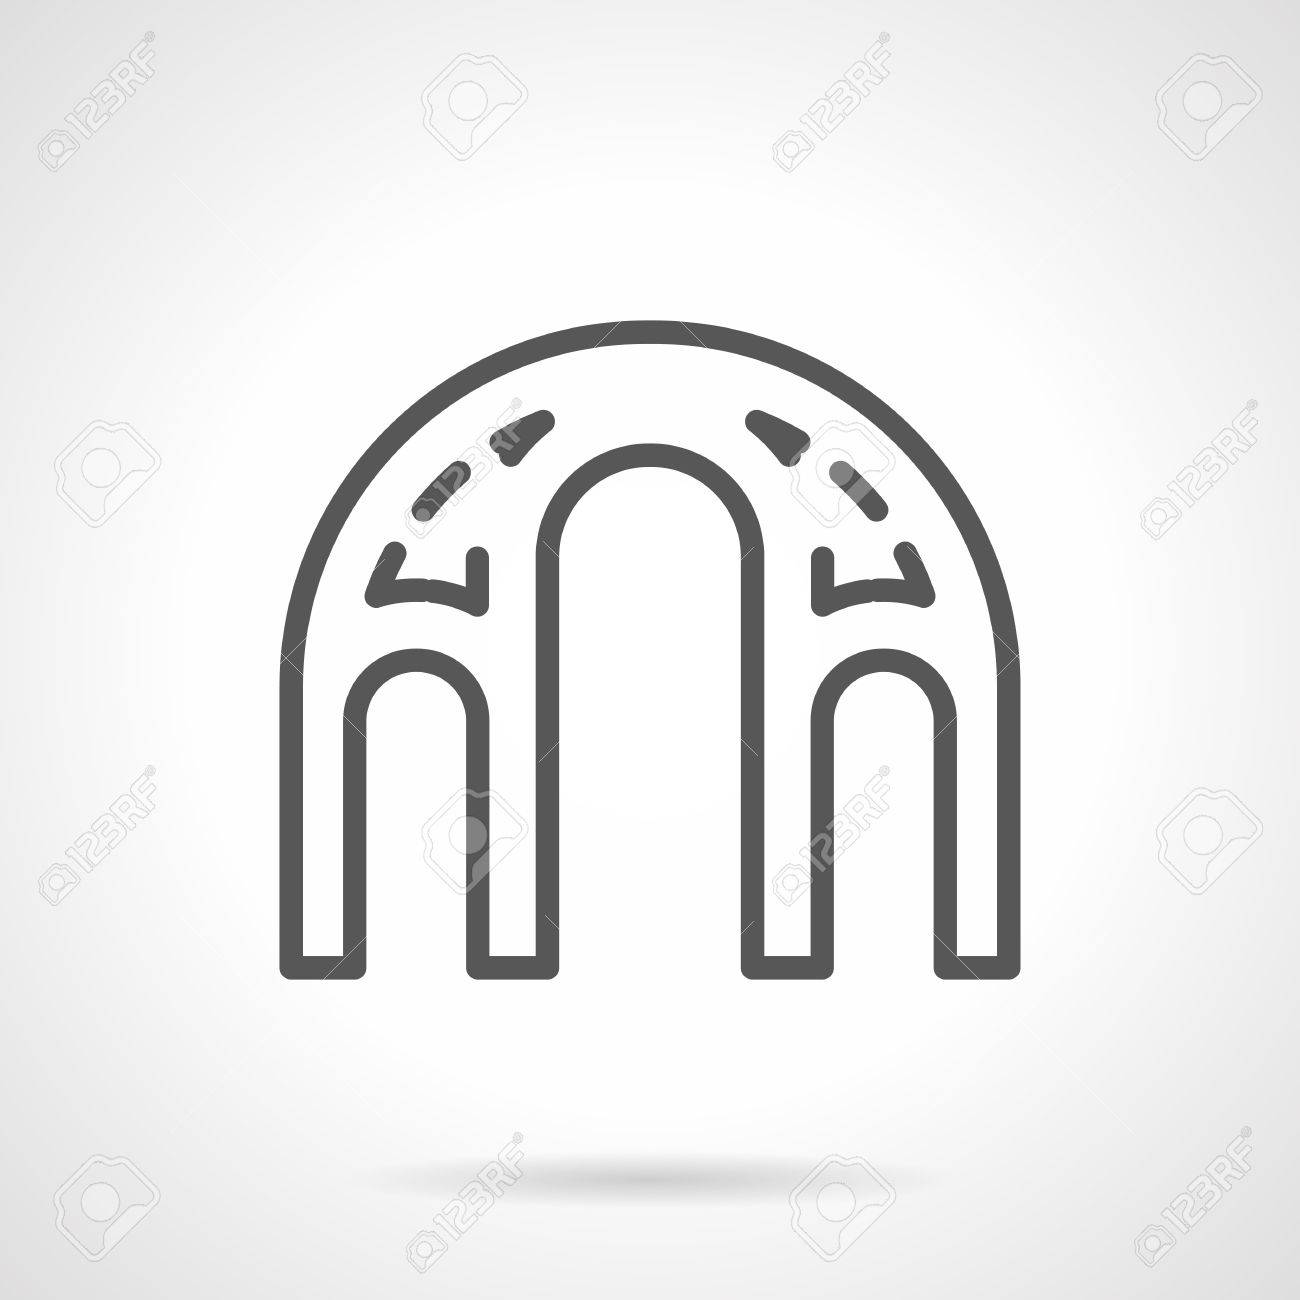 Architectural Element With Connection Of Round Arches Decorative